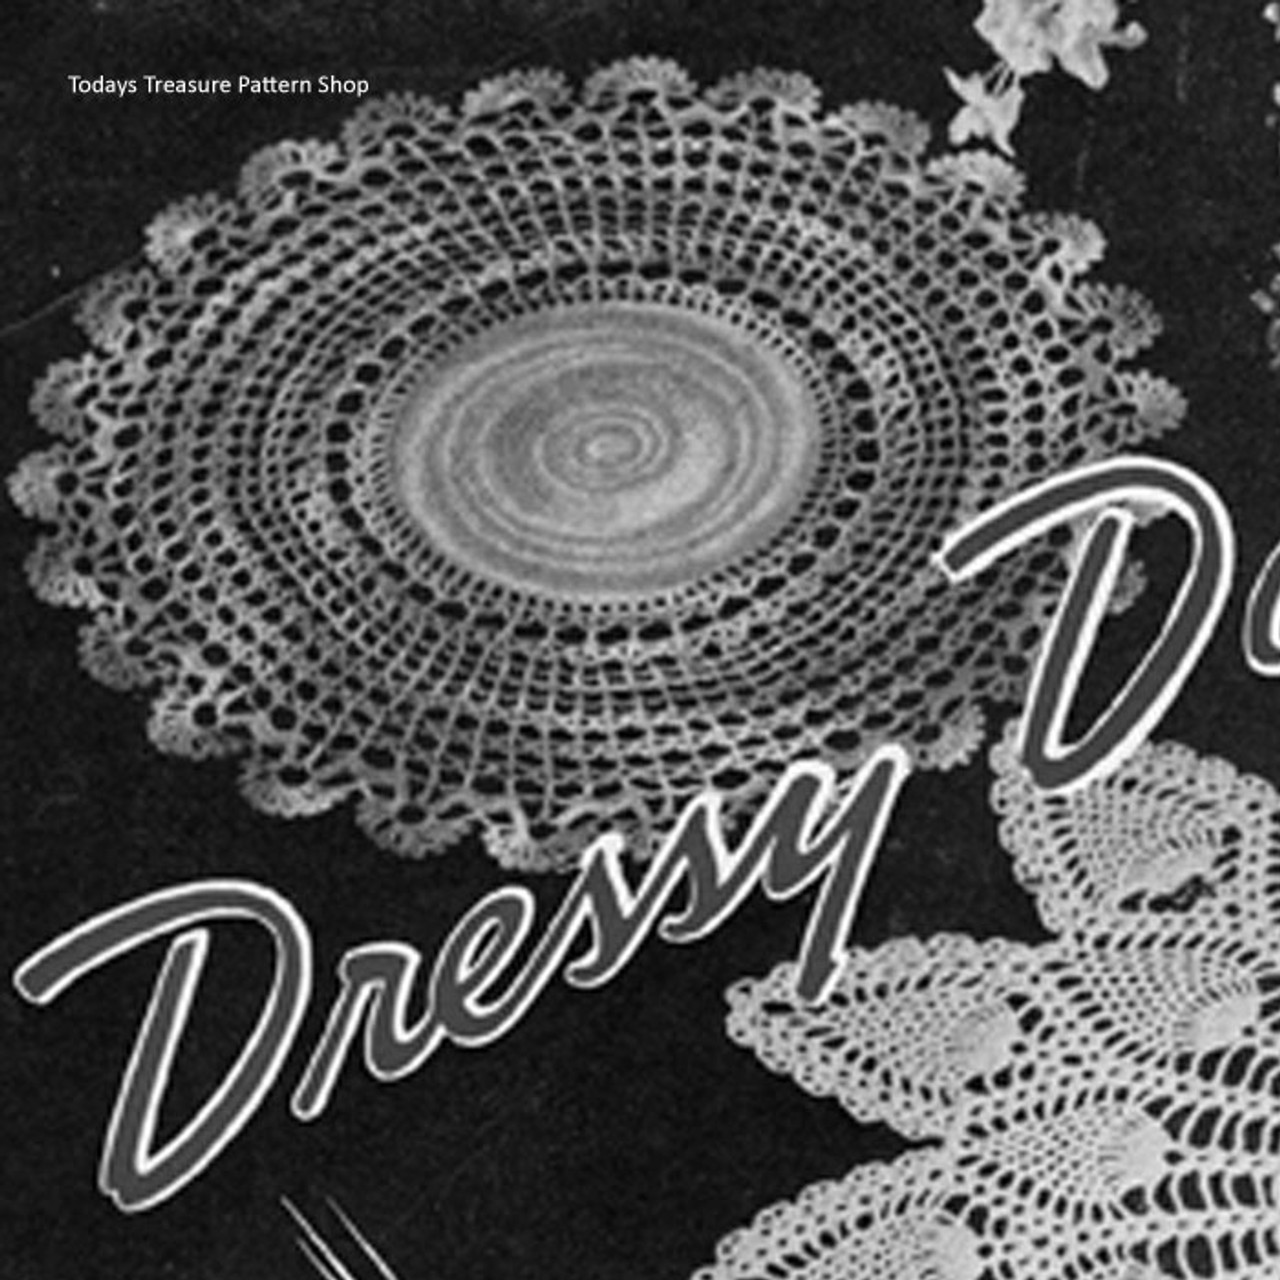 Round Crochet Doily Pattern Leaflet 87 from American Thread